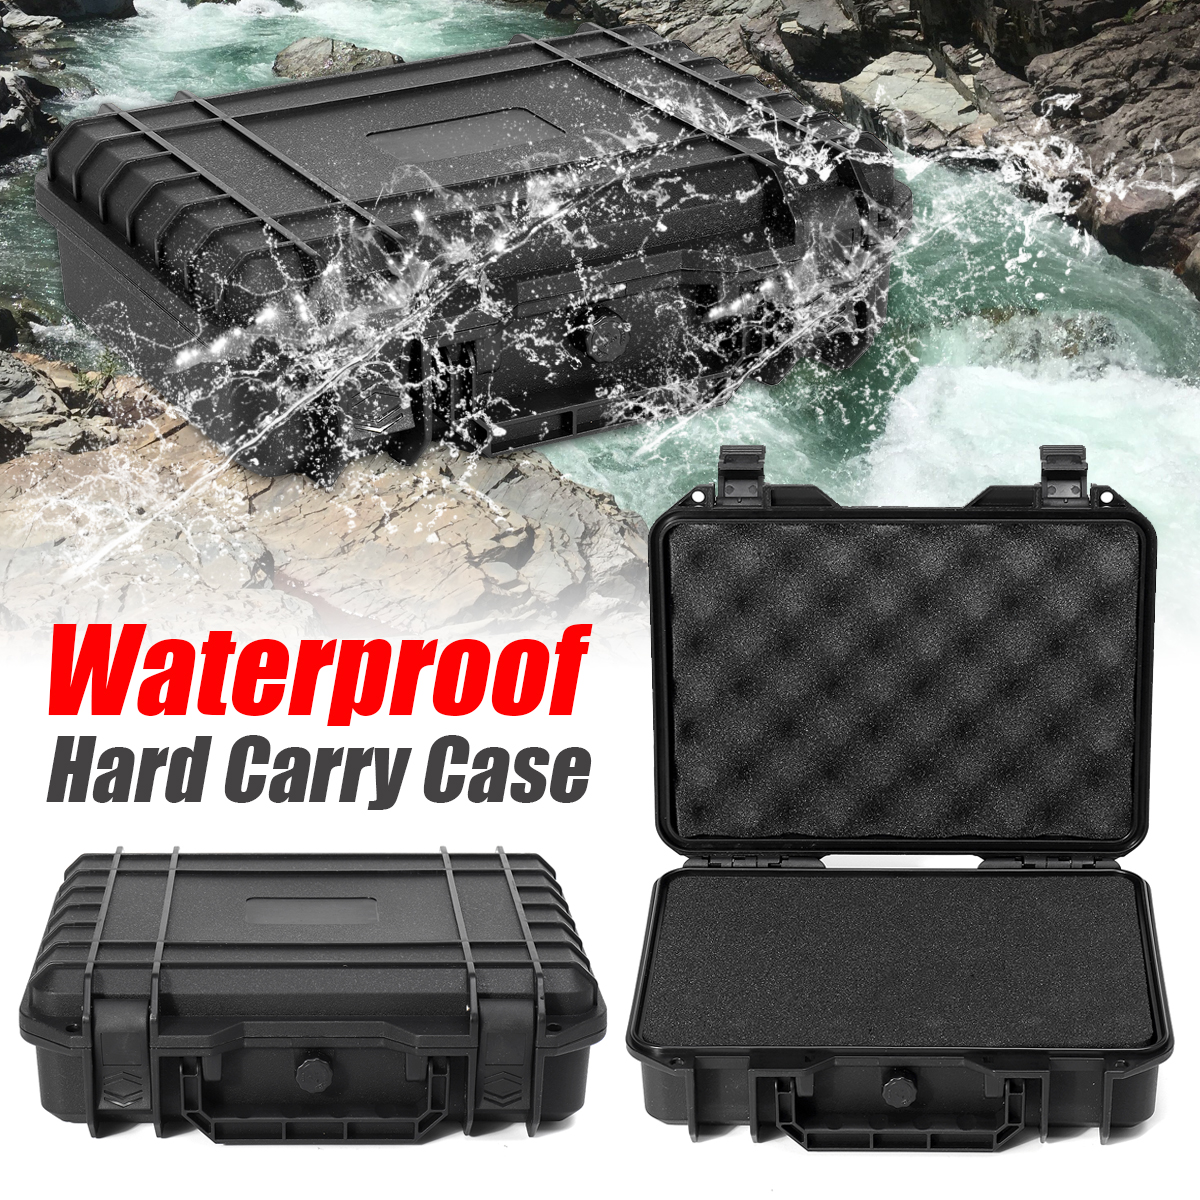 9 Sizes Waterproof Hard Carry Tool Case Bag Storage Box Camera Photography with Sponge for tools